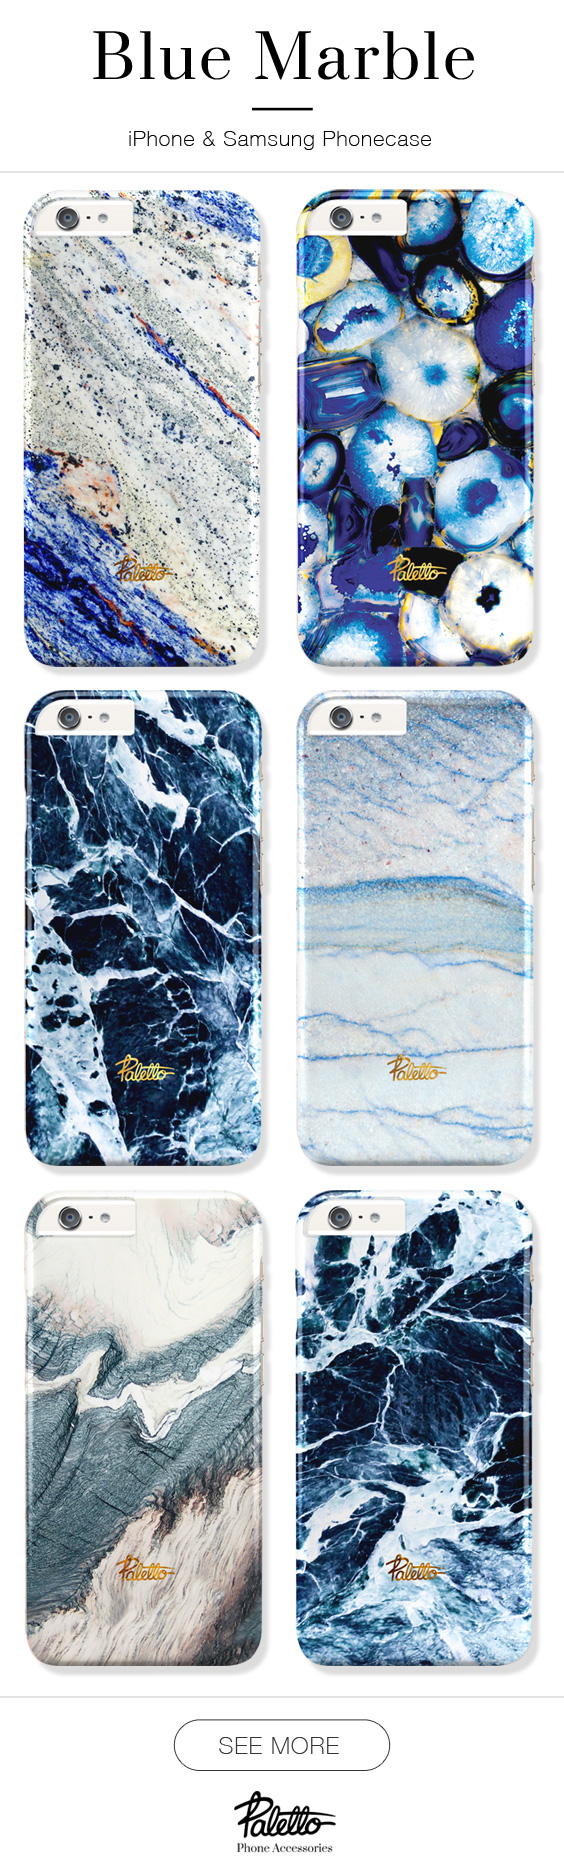 BLUE-marble-phone-case-Available-for-iPhone-s-s-plus-s-c-SE-Samsung-galaxy-S-S-S-wallpaper-wp3403398